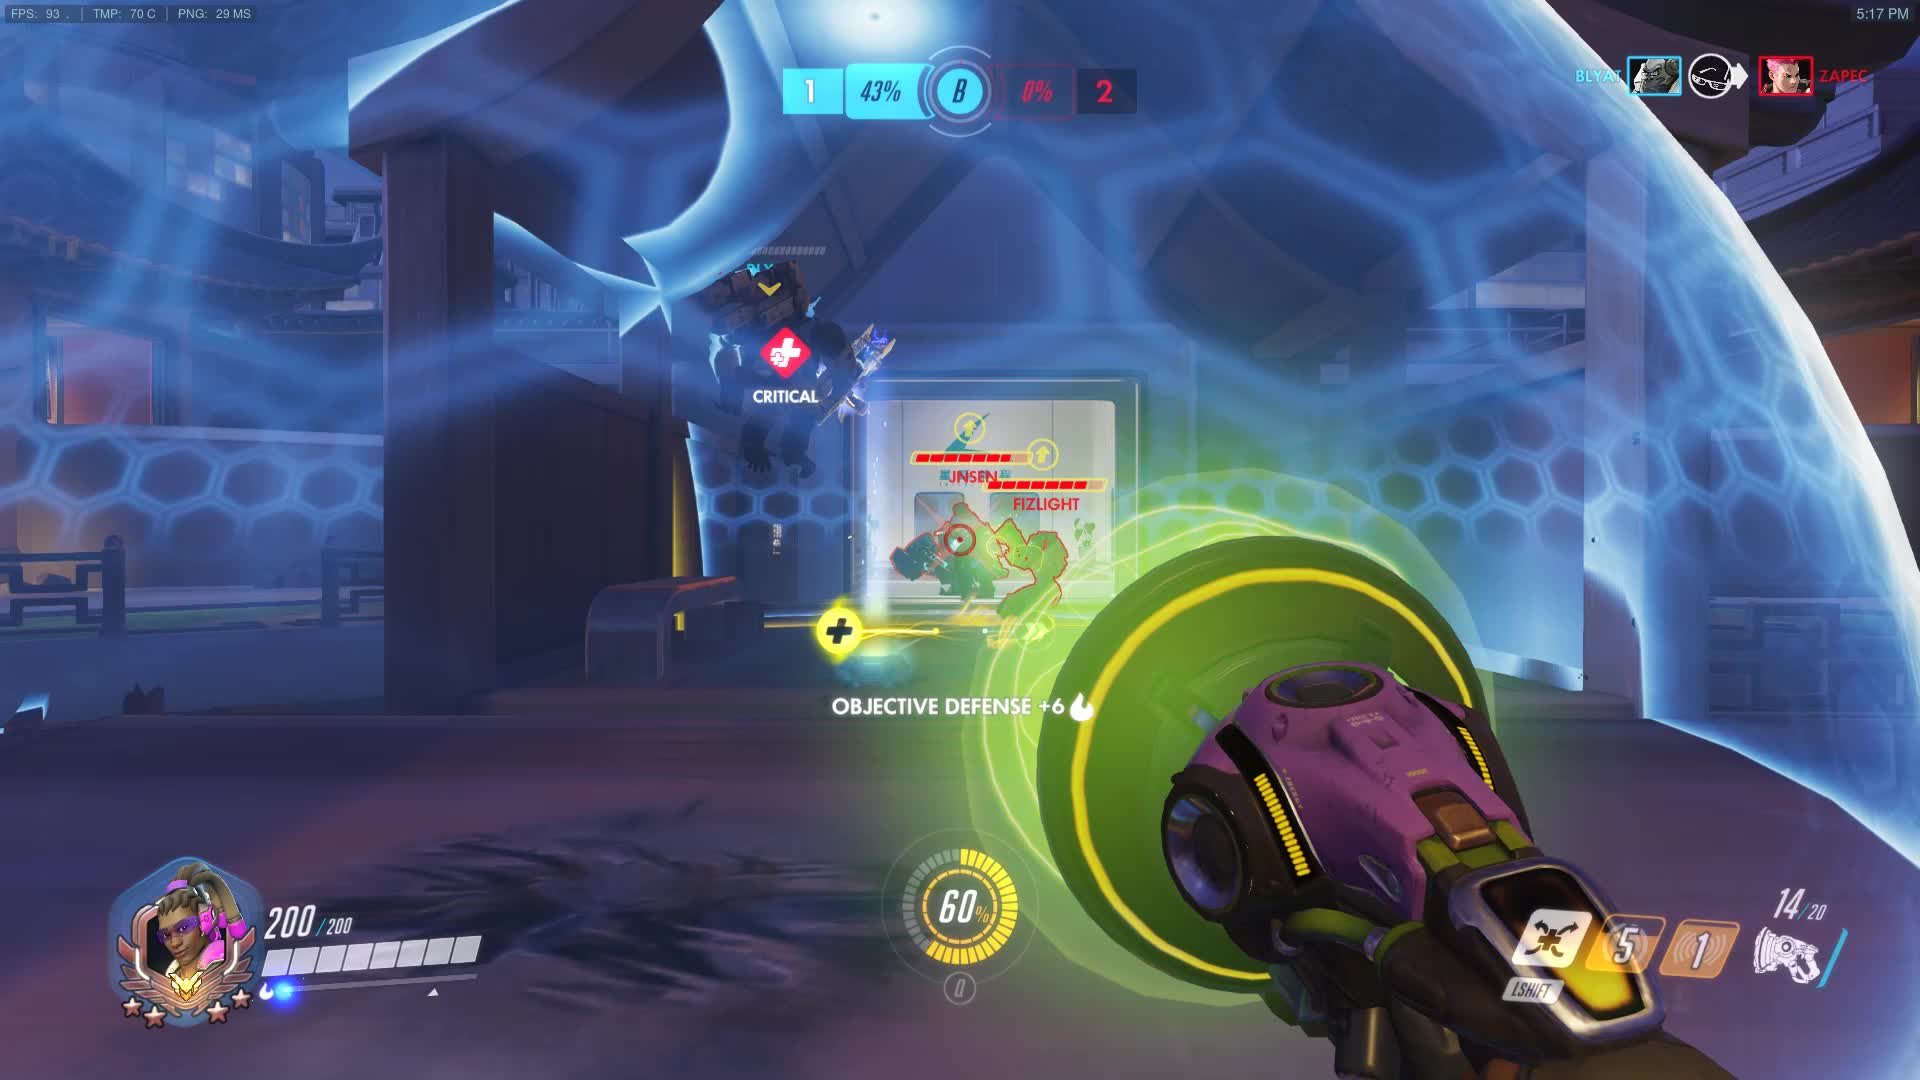 Nice game blizzard GIFs